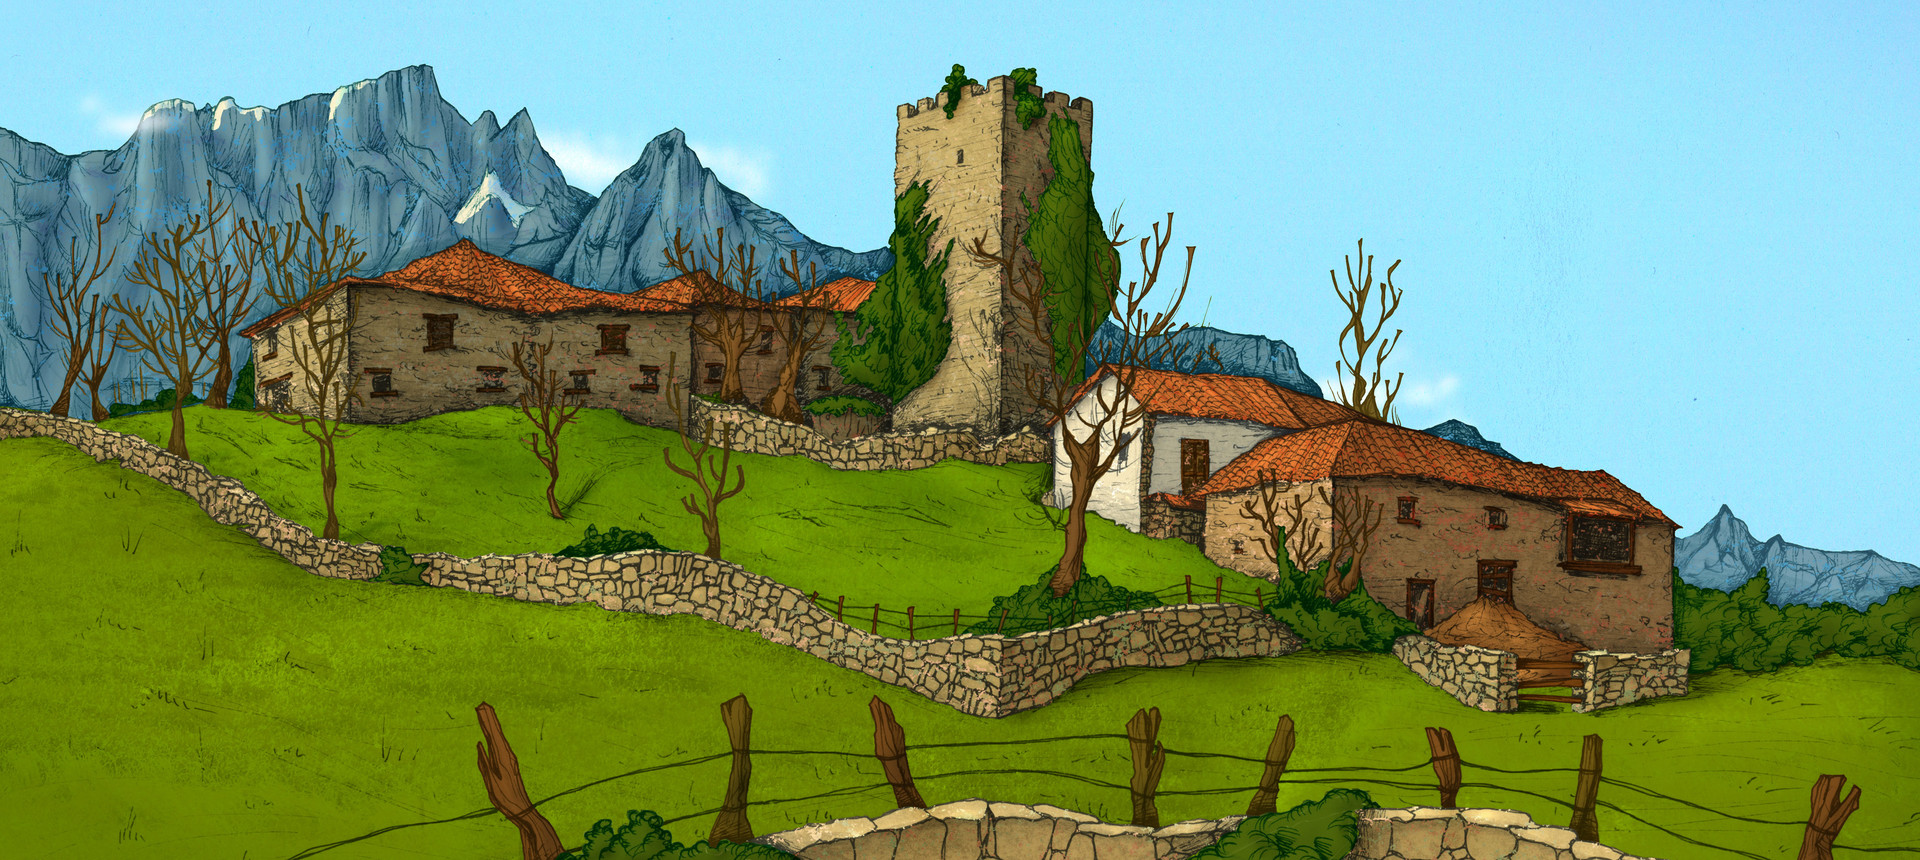 Autogiro illustration studio mountain village 3